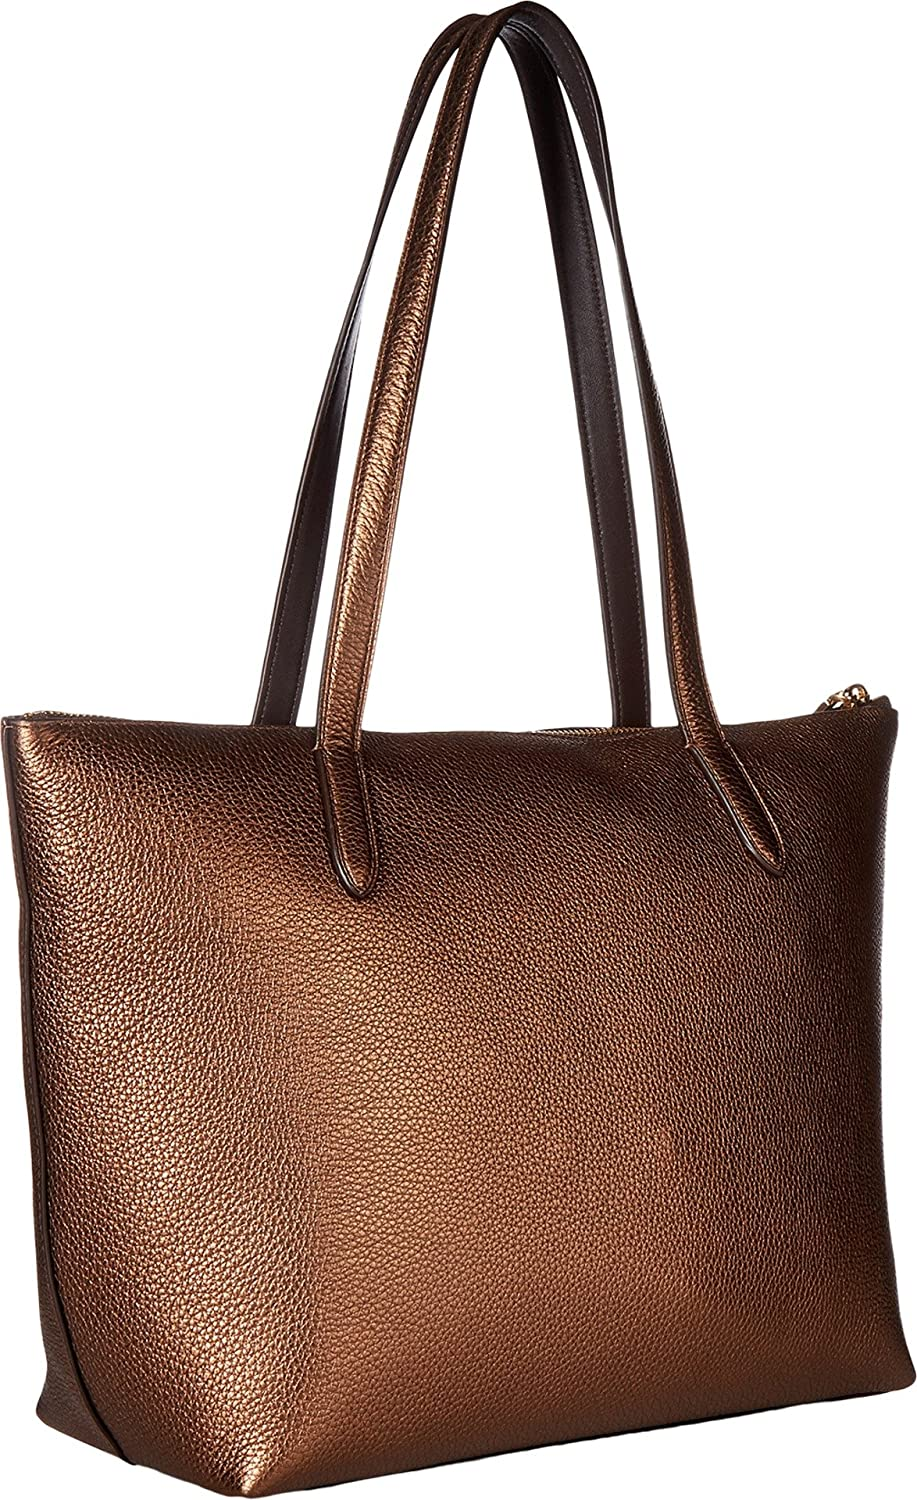 241938fcbb6 COACH Women s Taylor Tote in Metallic Leather Li Bronze One Size   Amazon.ca  Shoes   Handbags